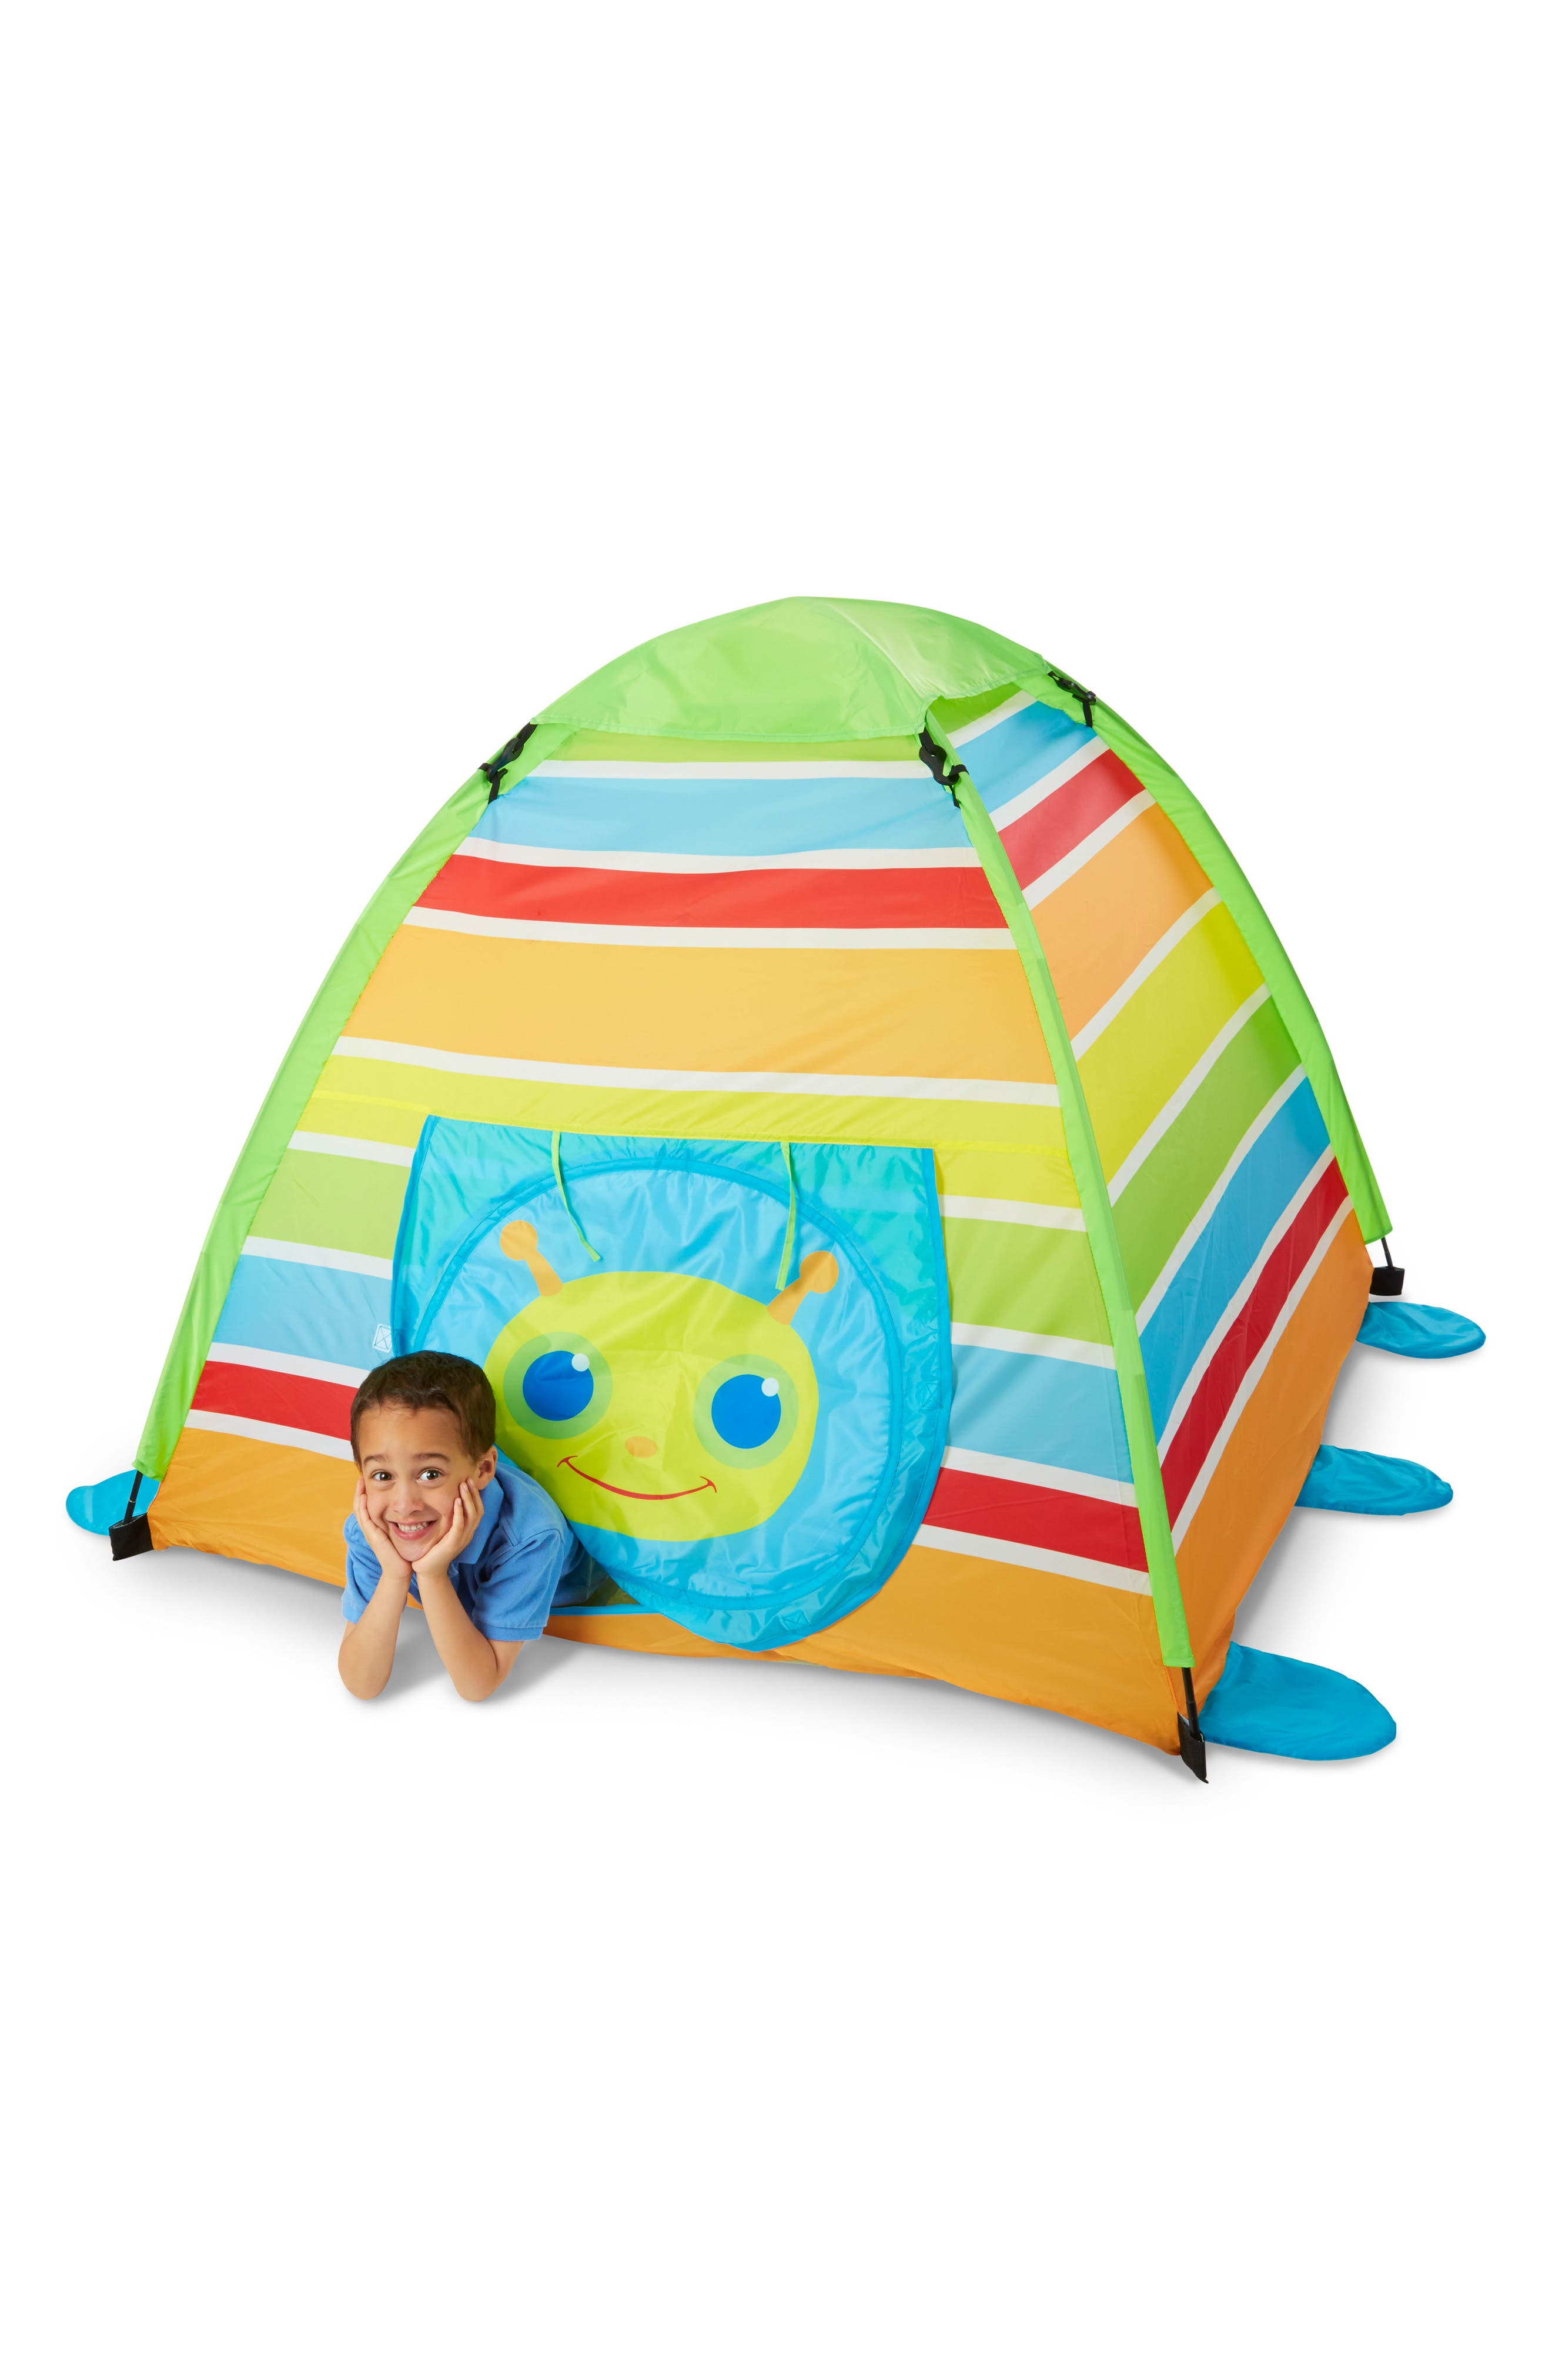 Giddy Buggy Tent,                             Alternate thumbnail 3, color,                             300